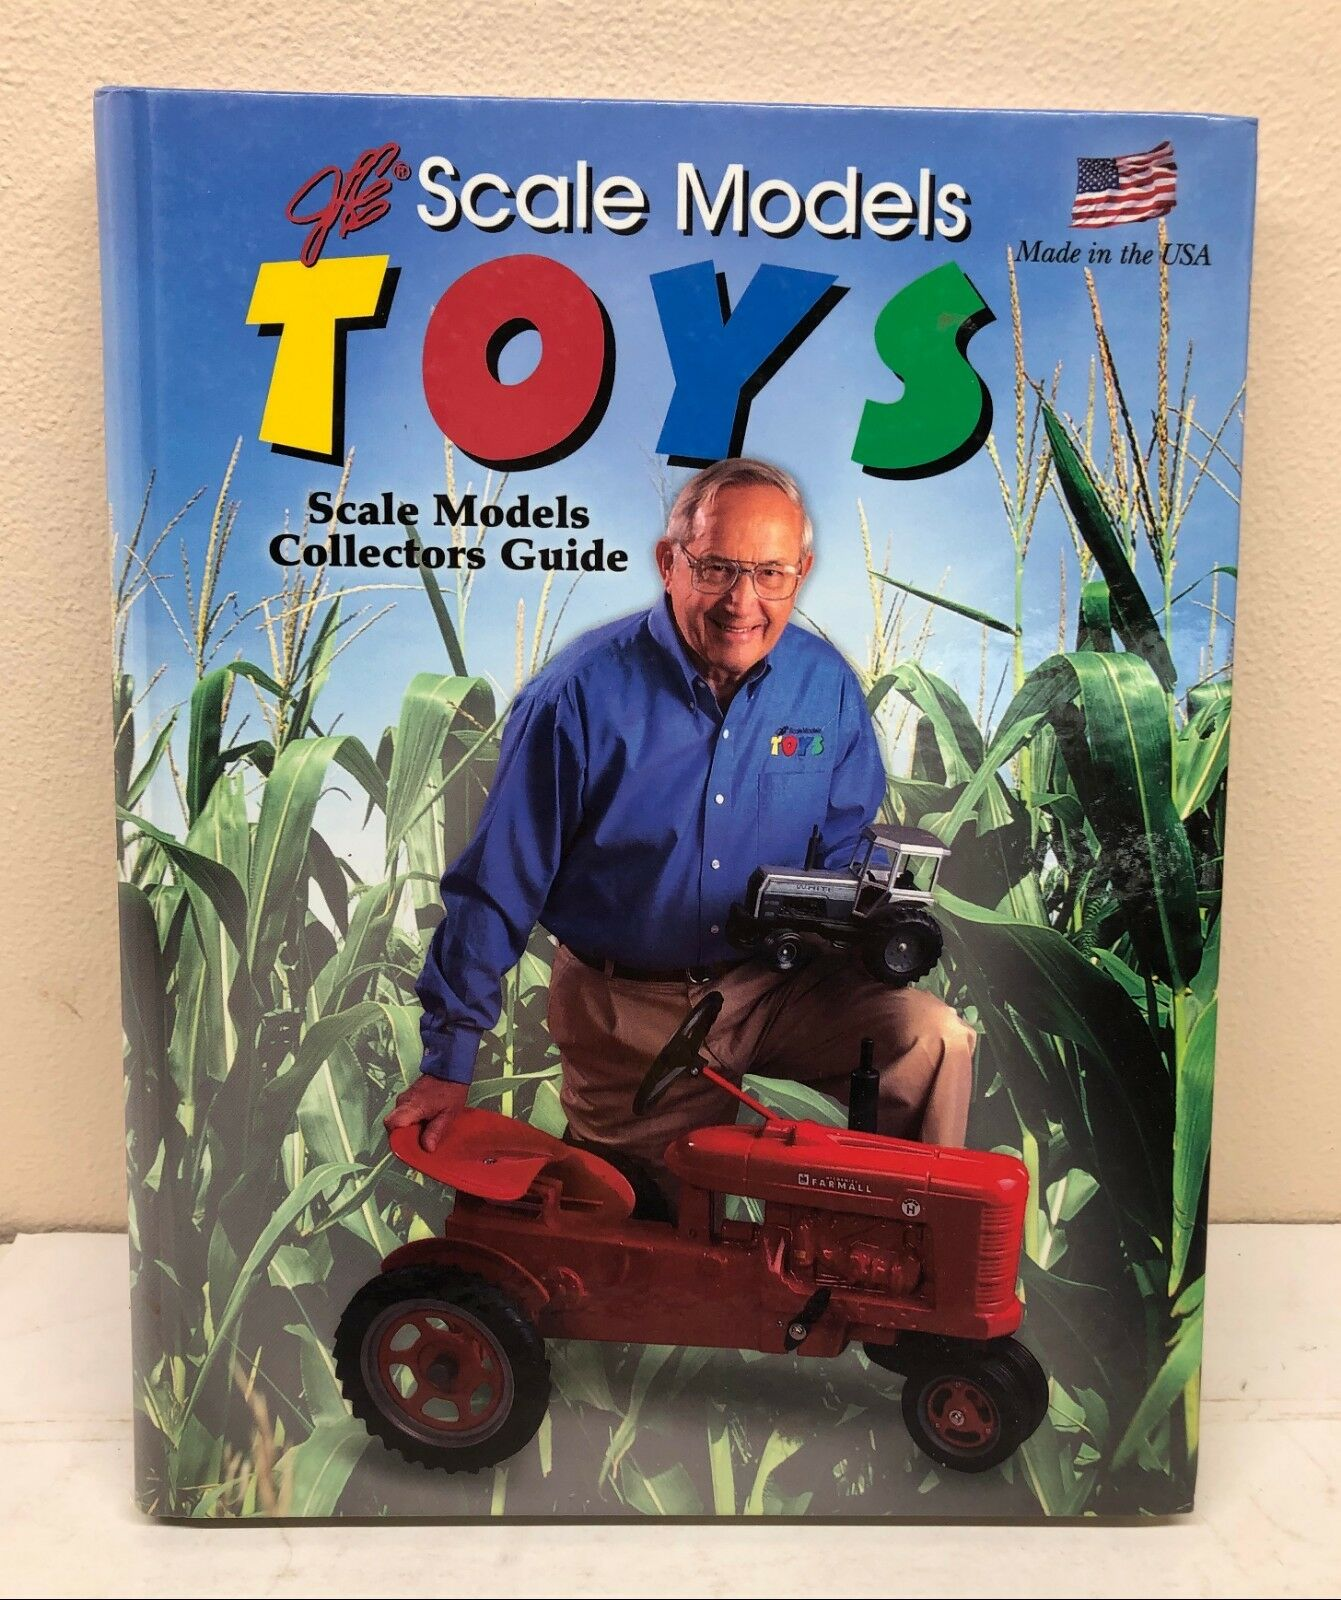 Scale Models Farm Toys 1979-2005 Collector Guide Hard Cover Book Signed Joe Ertl